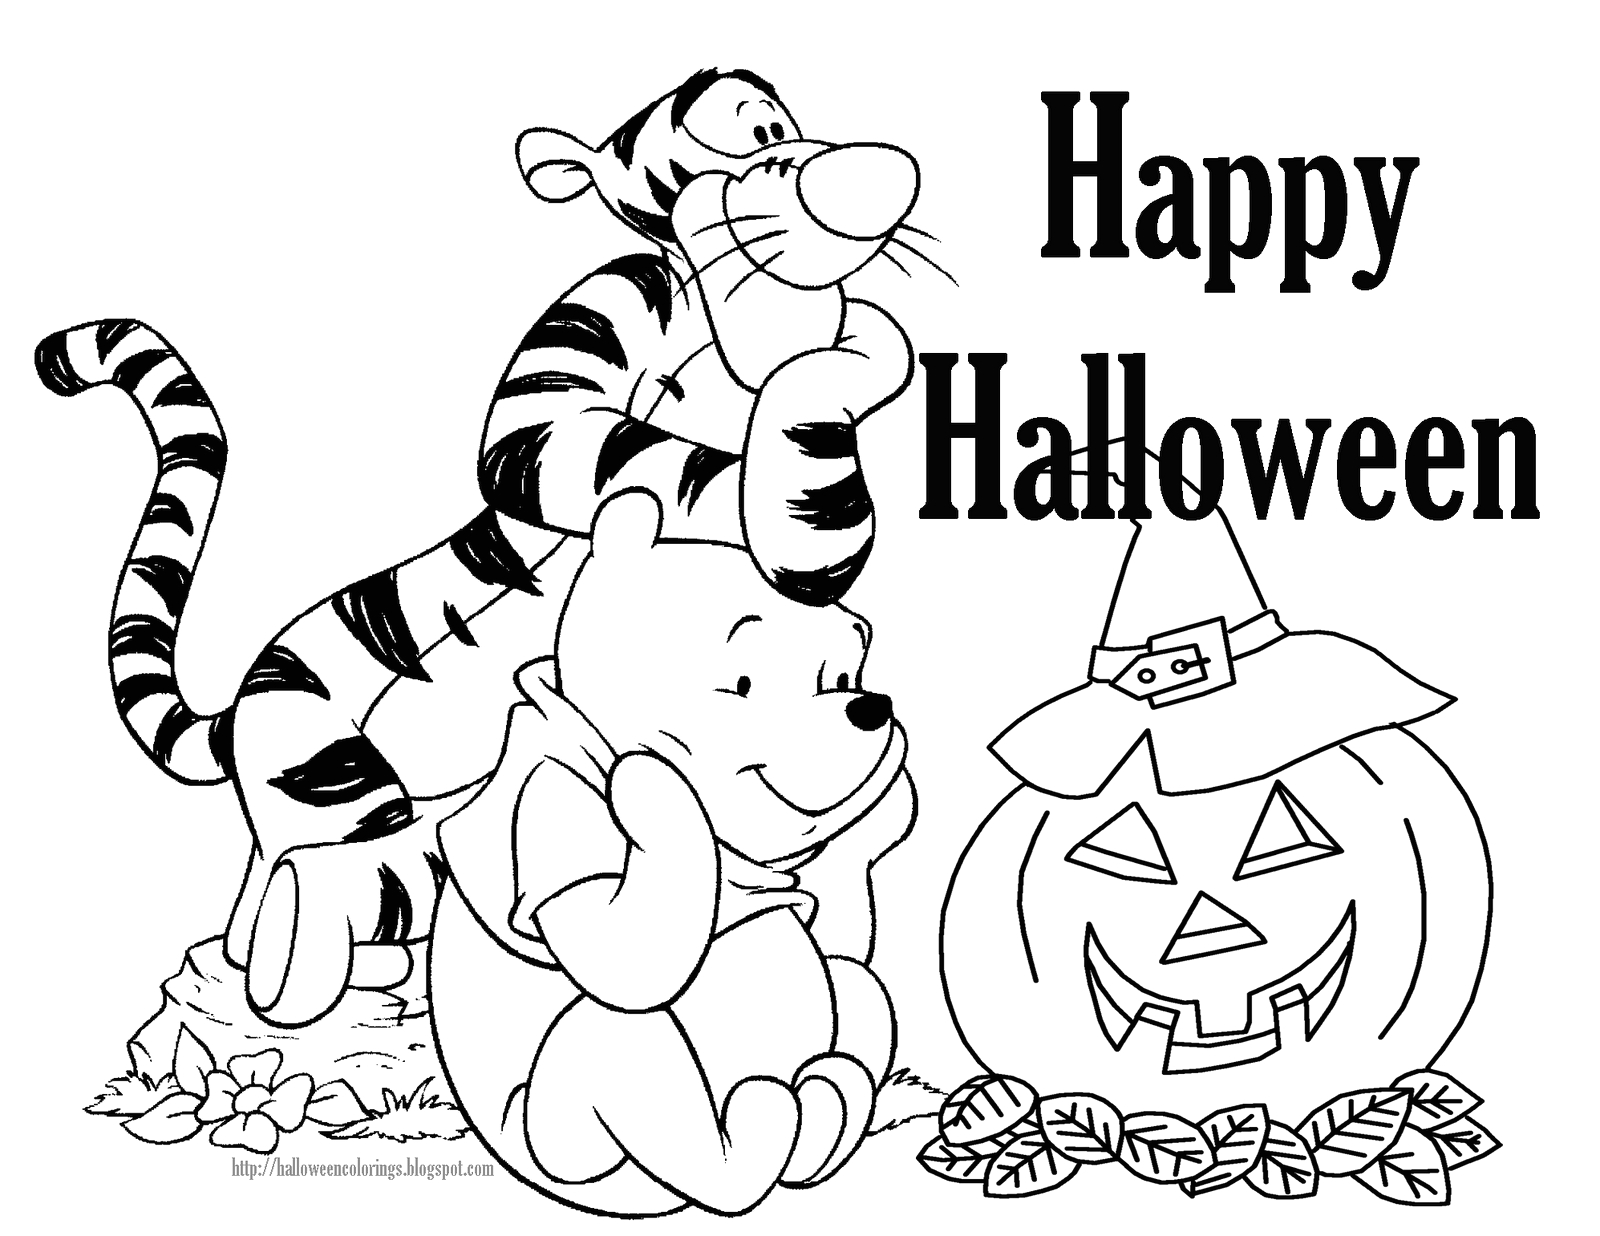 Free Printable Halloween Coloring Pages for Kids Halloween Coloring Pages – Free Printable Minnesota Miranda